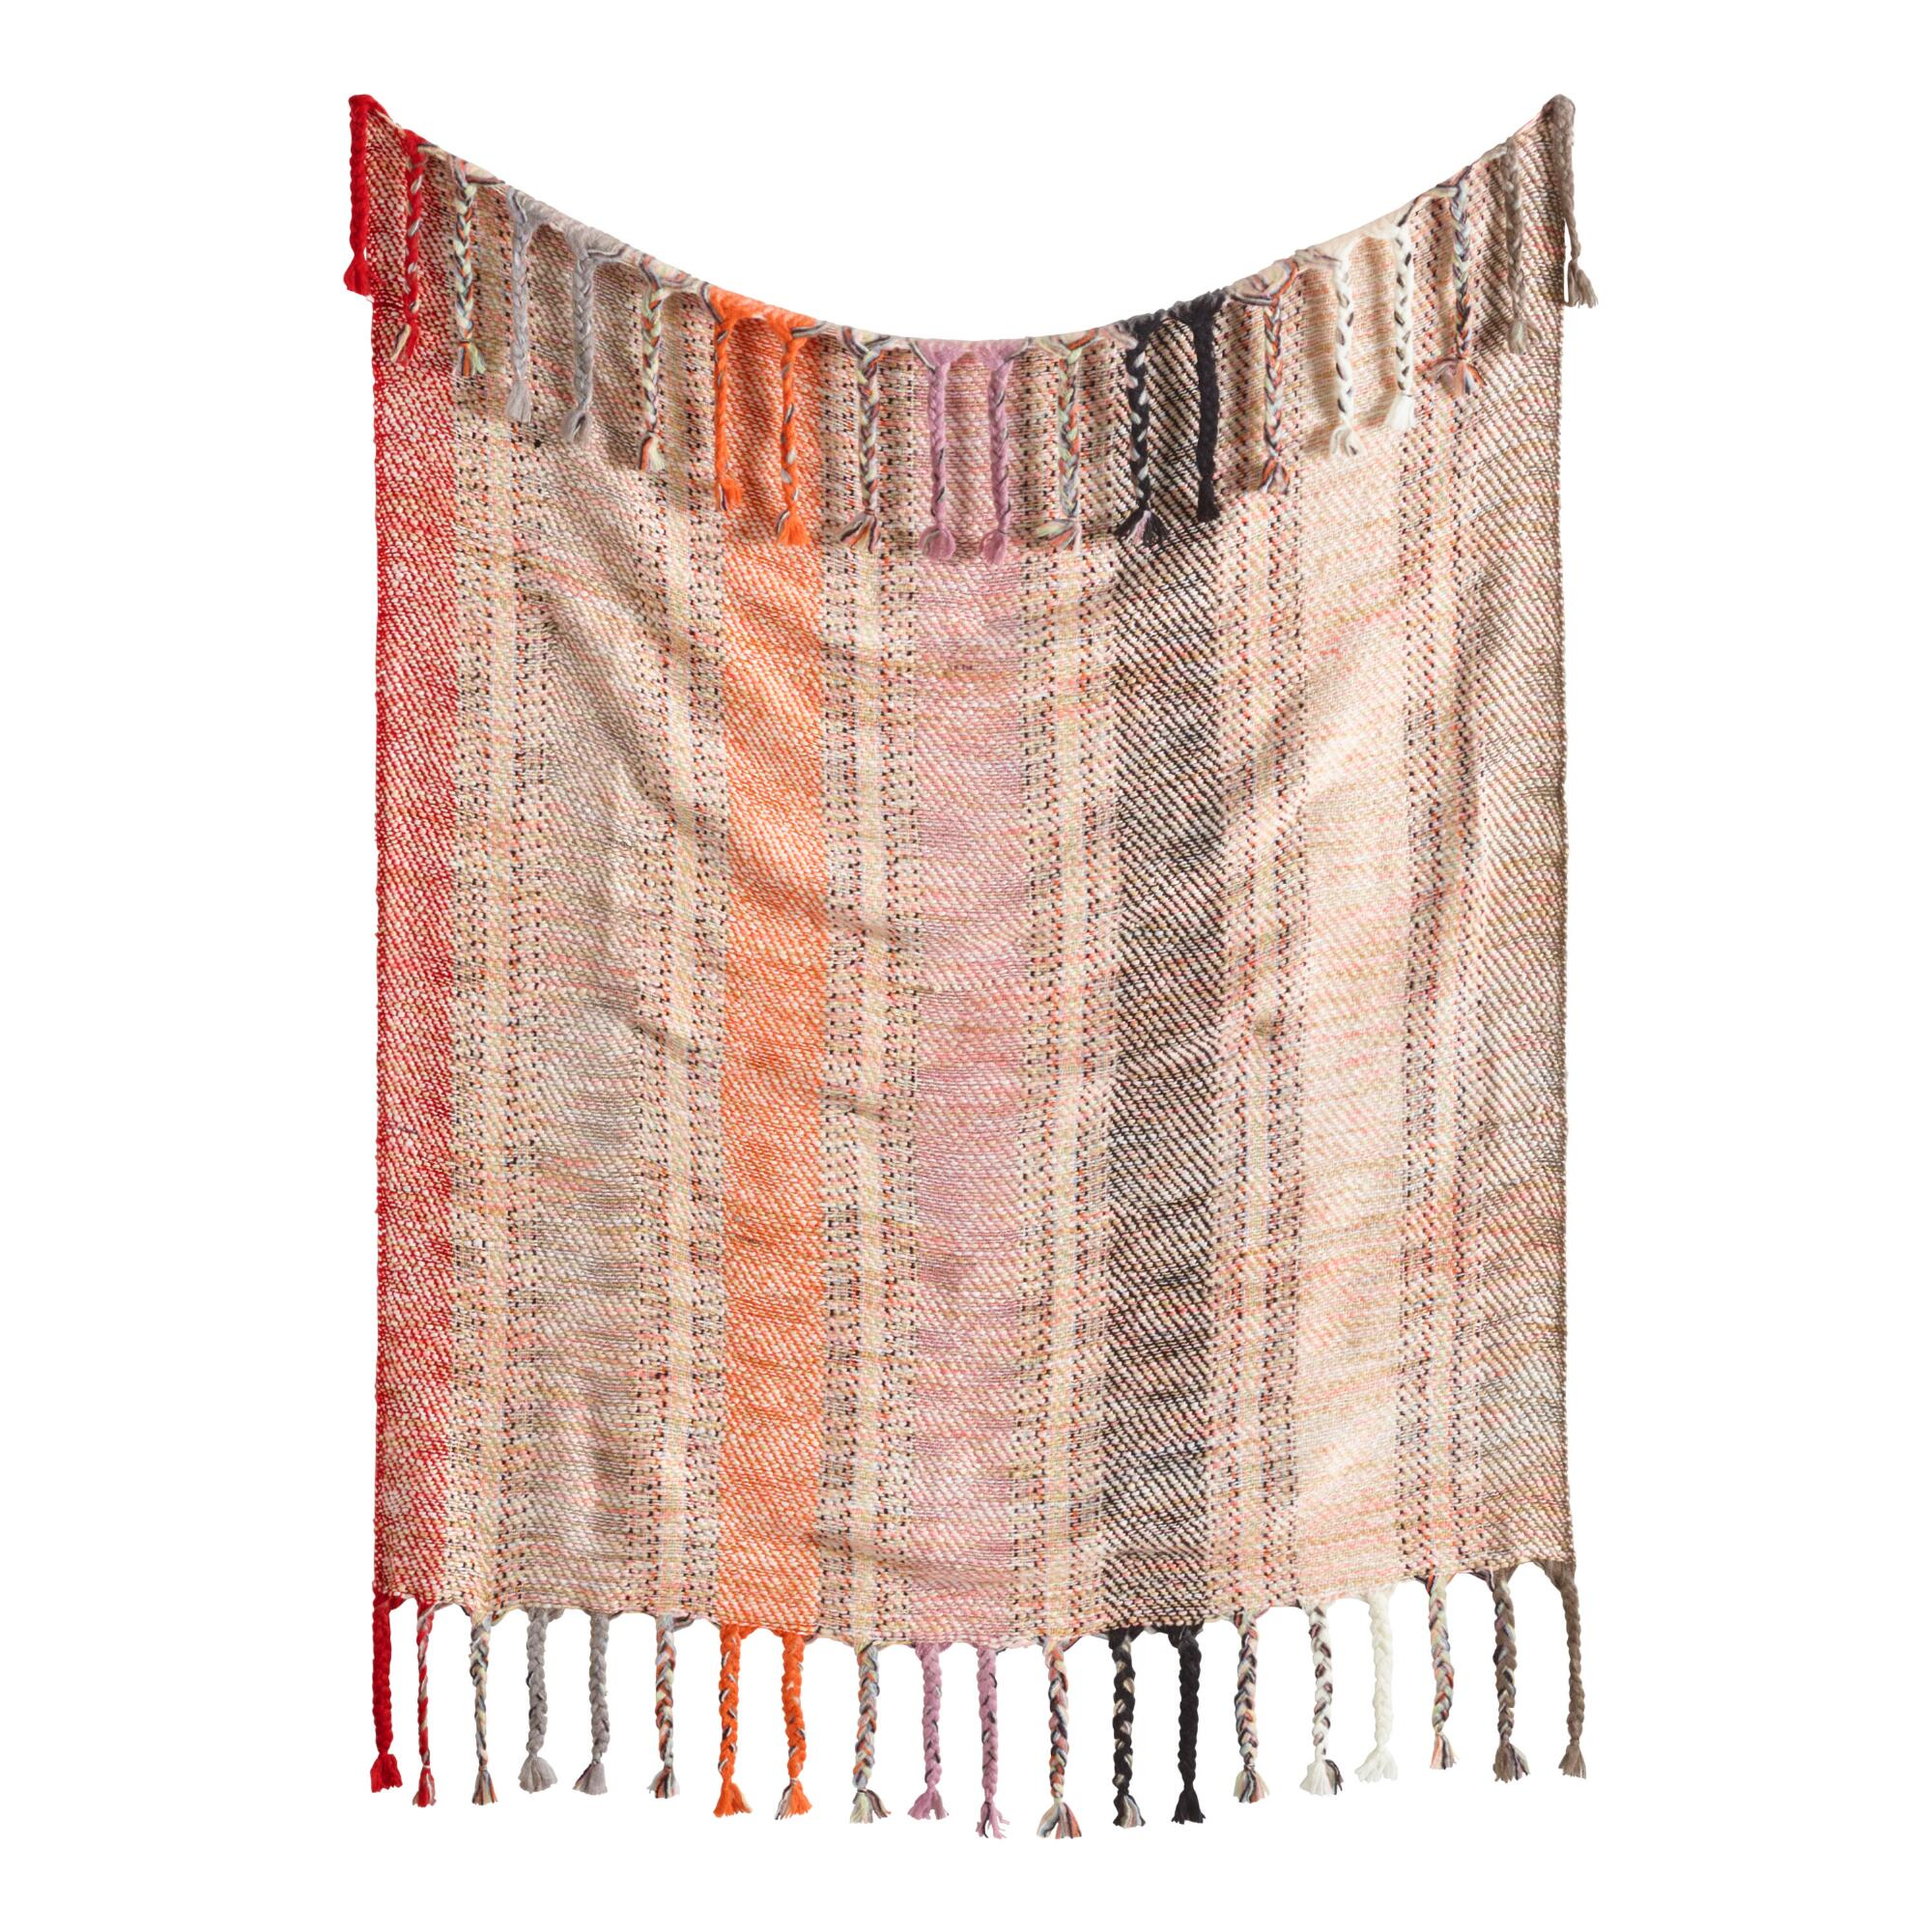 Warm Multi Stripe Boho Throw Blanket - Acrylic by World Market